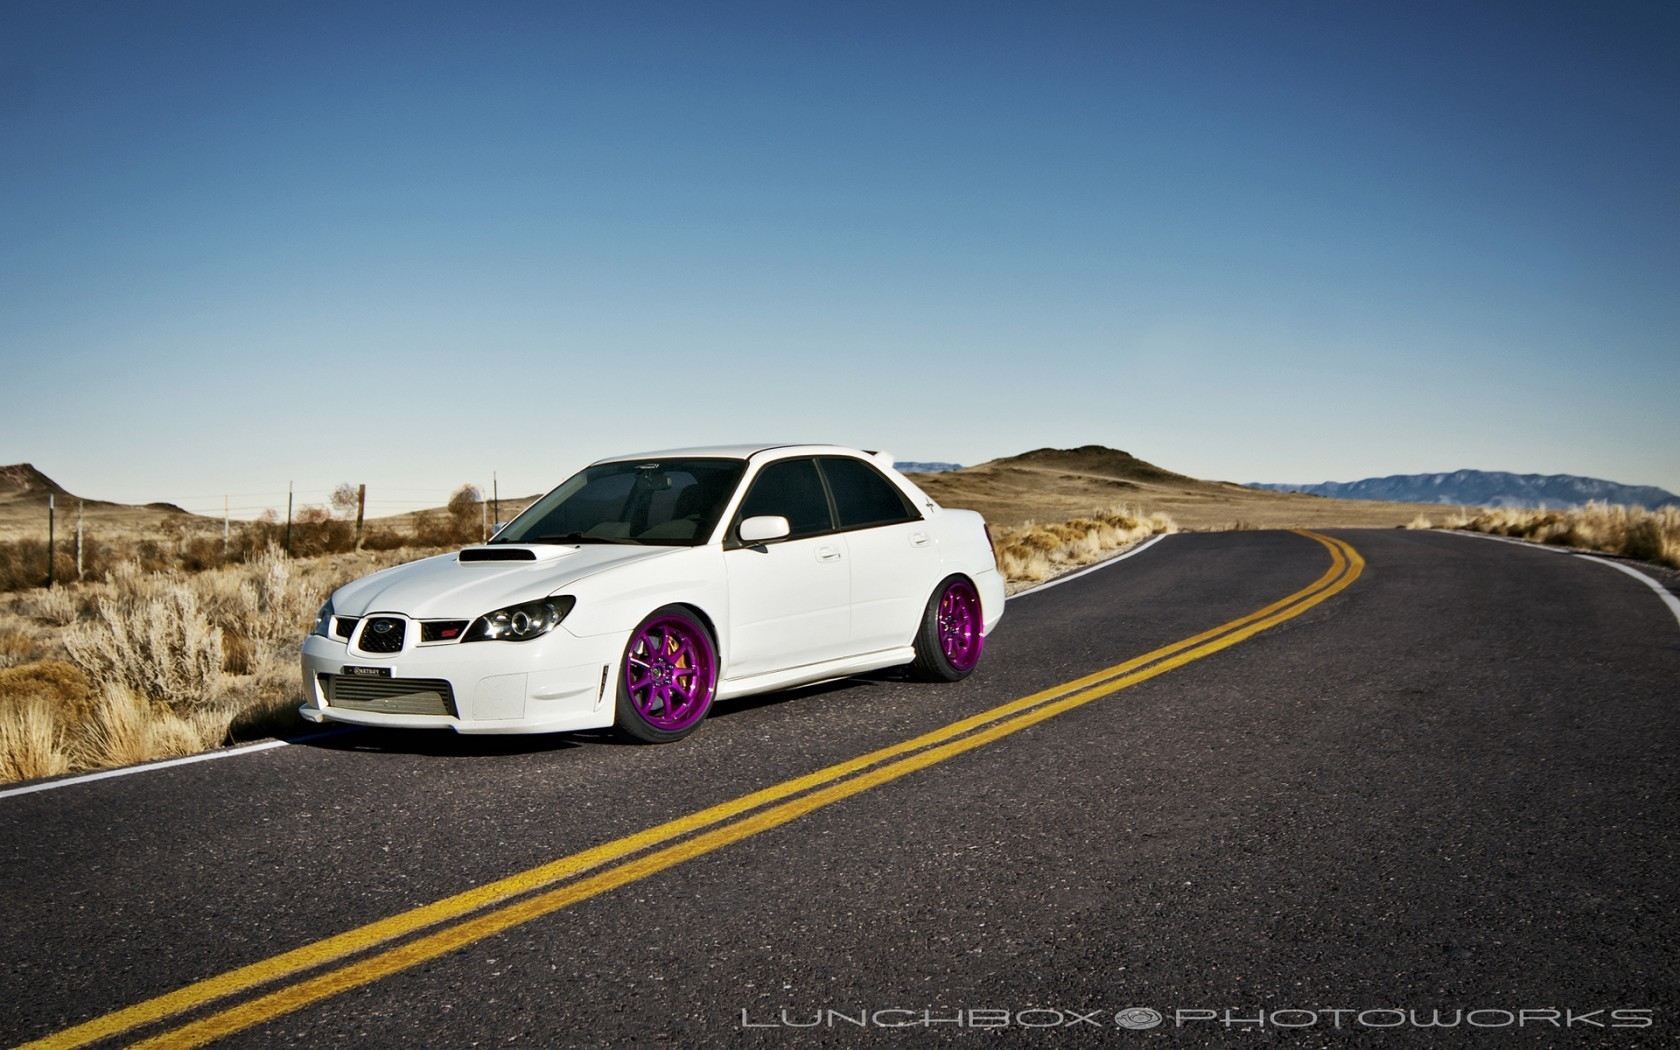 16224 download wallpaper Transport, Auto, Subaru screensavers and pictures for free